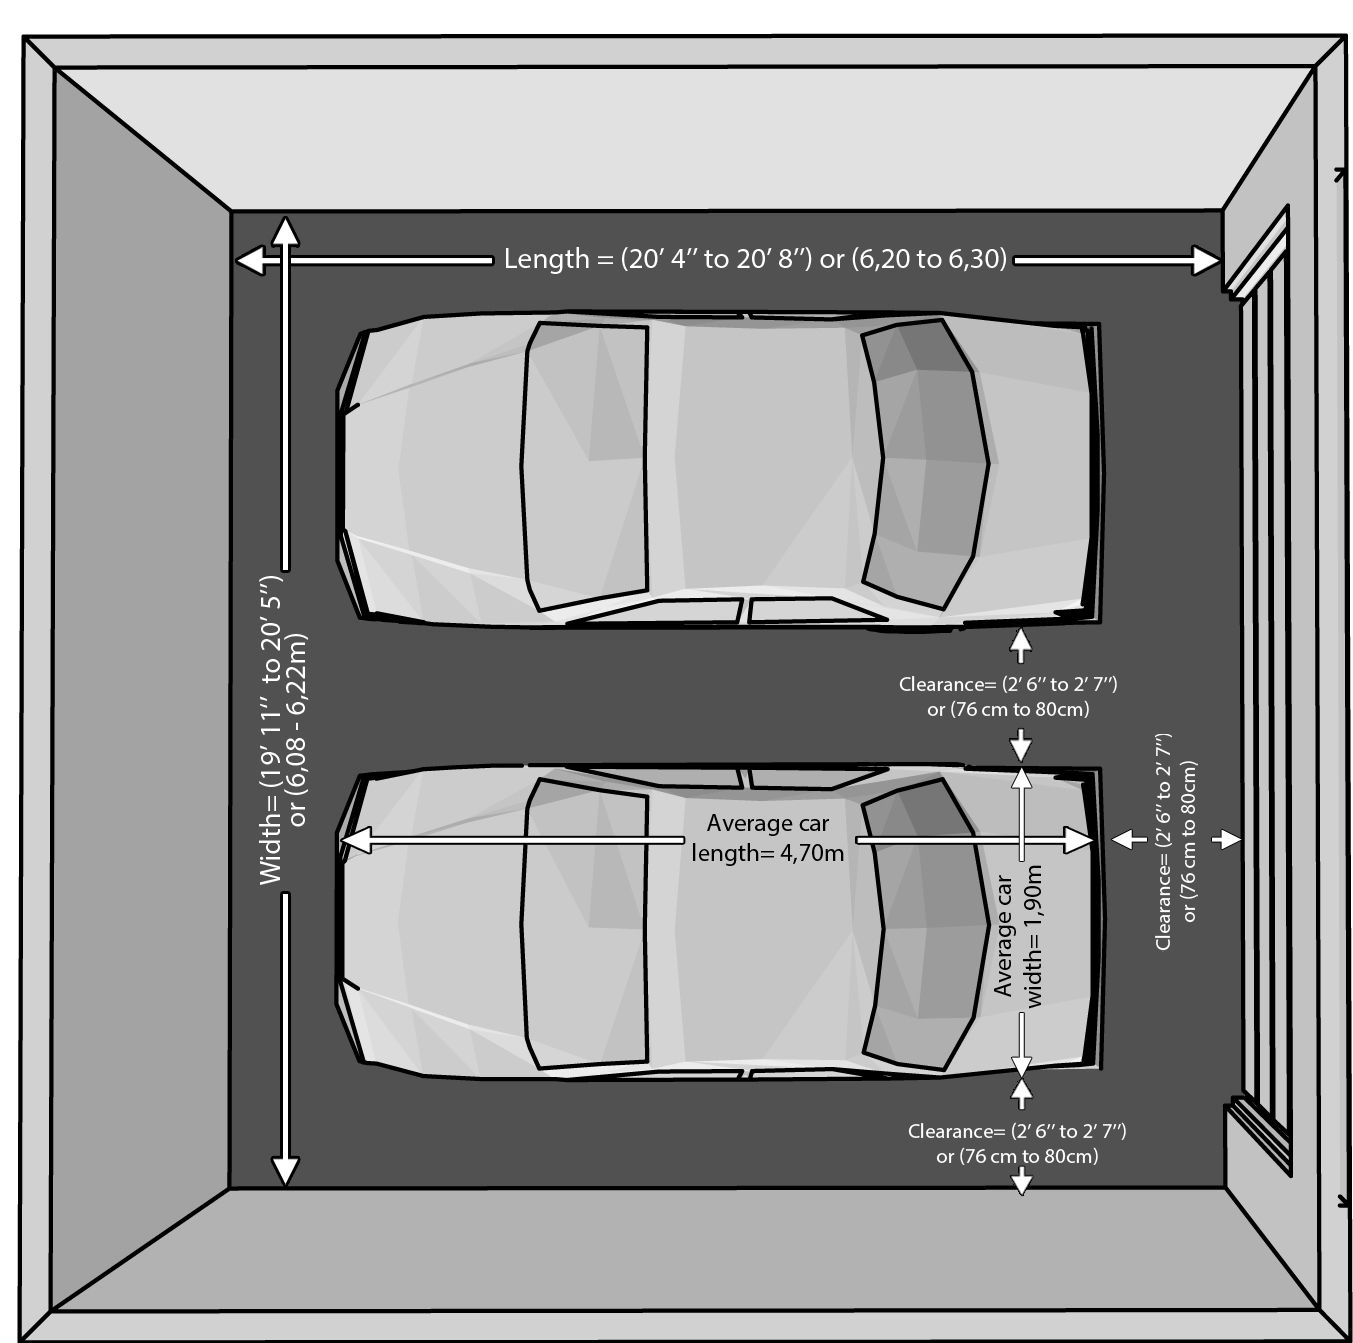 The Dimensions Of An One Car And A Two Car Garage Garage Dimensions Garage Door Dimensions Standard Garage Door Sizes